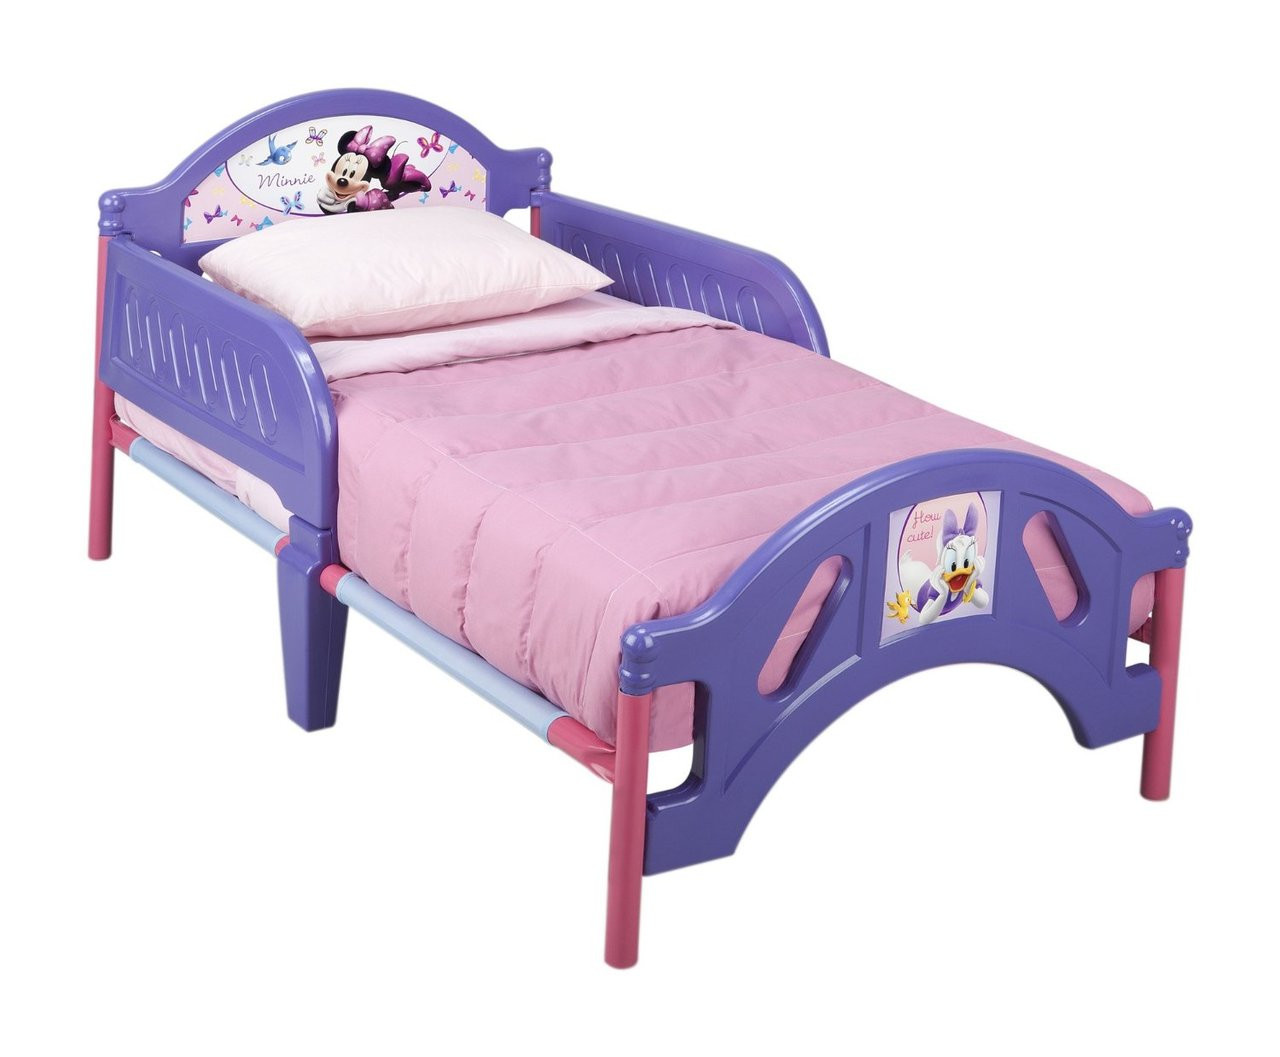 Cheap Toddler Beds Minnie Mouse Toddler Bed